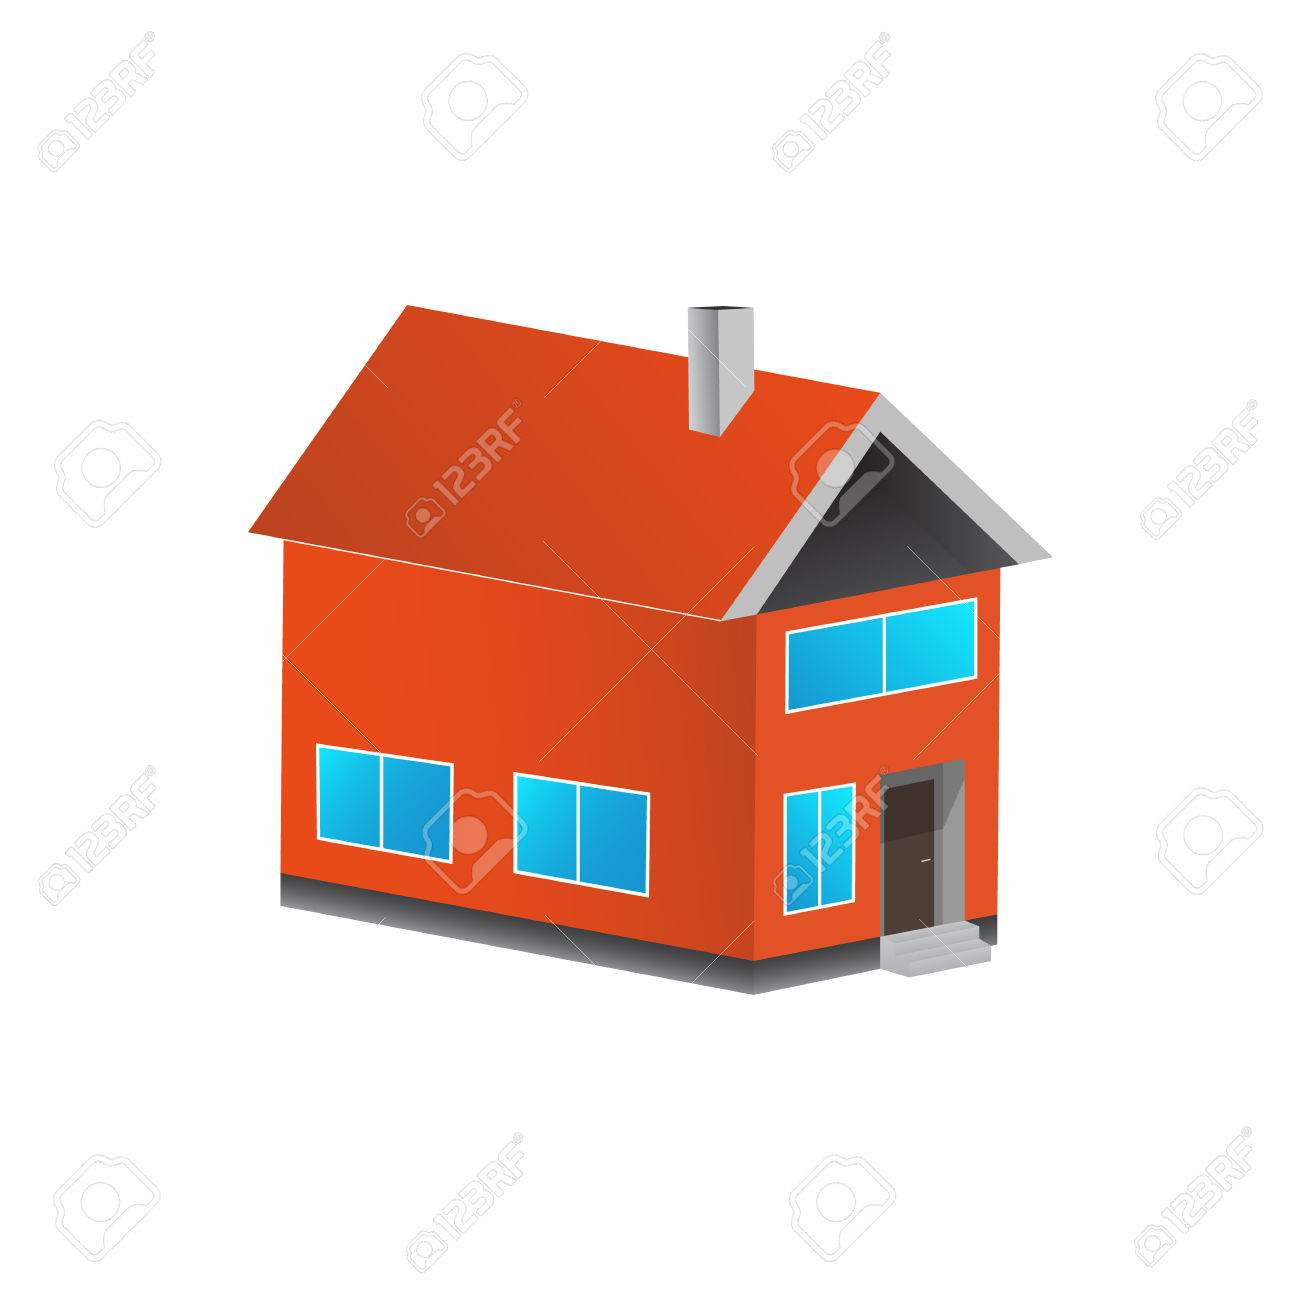 House Flat Icon Design Your Own Apartment 3d Colorful House Royalty Free Cliparts Vectors And Stock Illustration Image 76041621